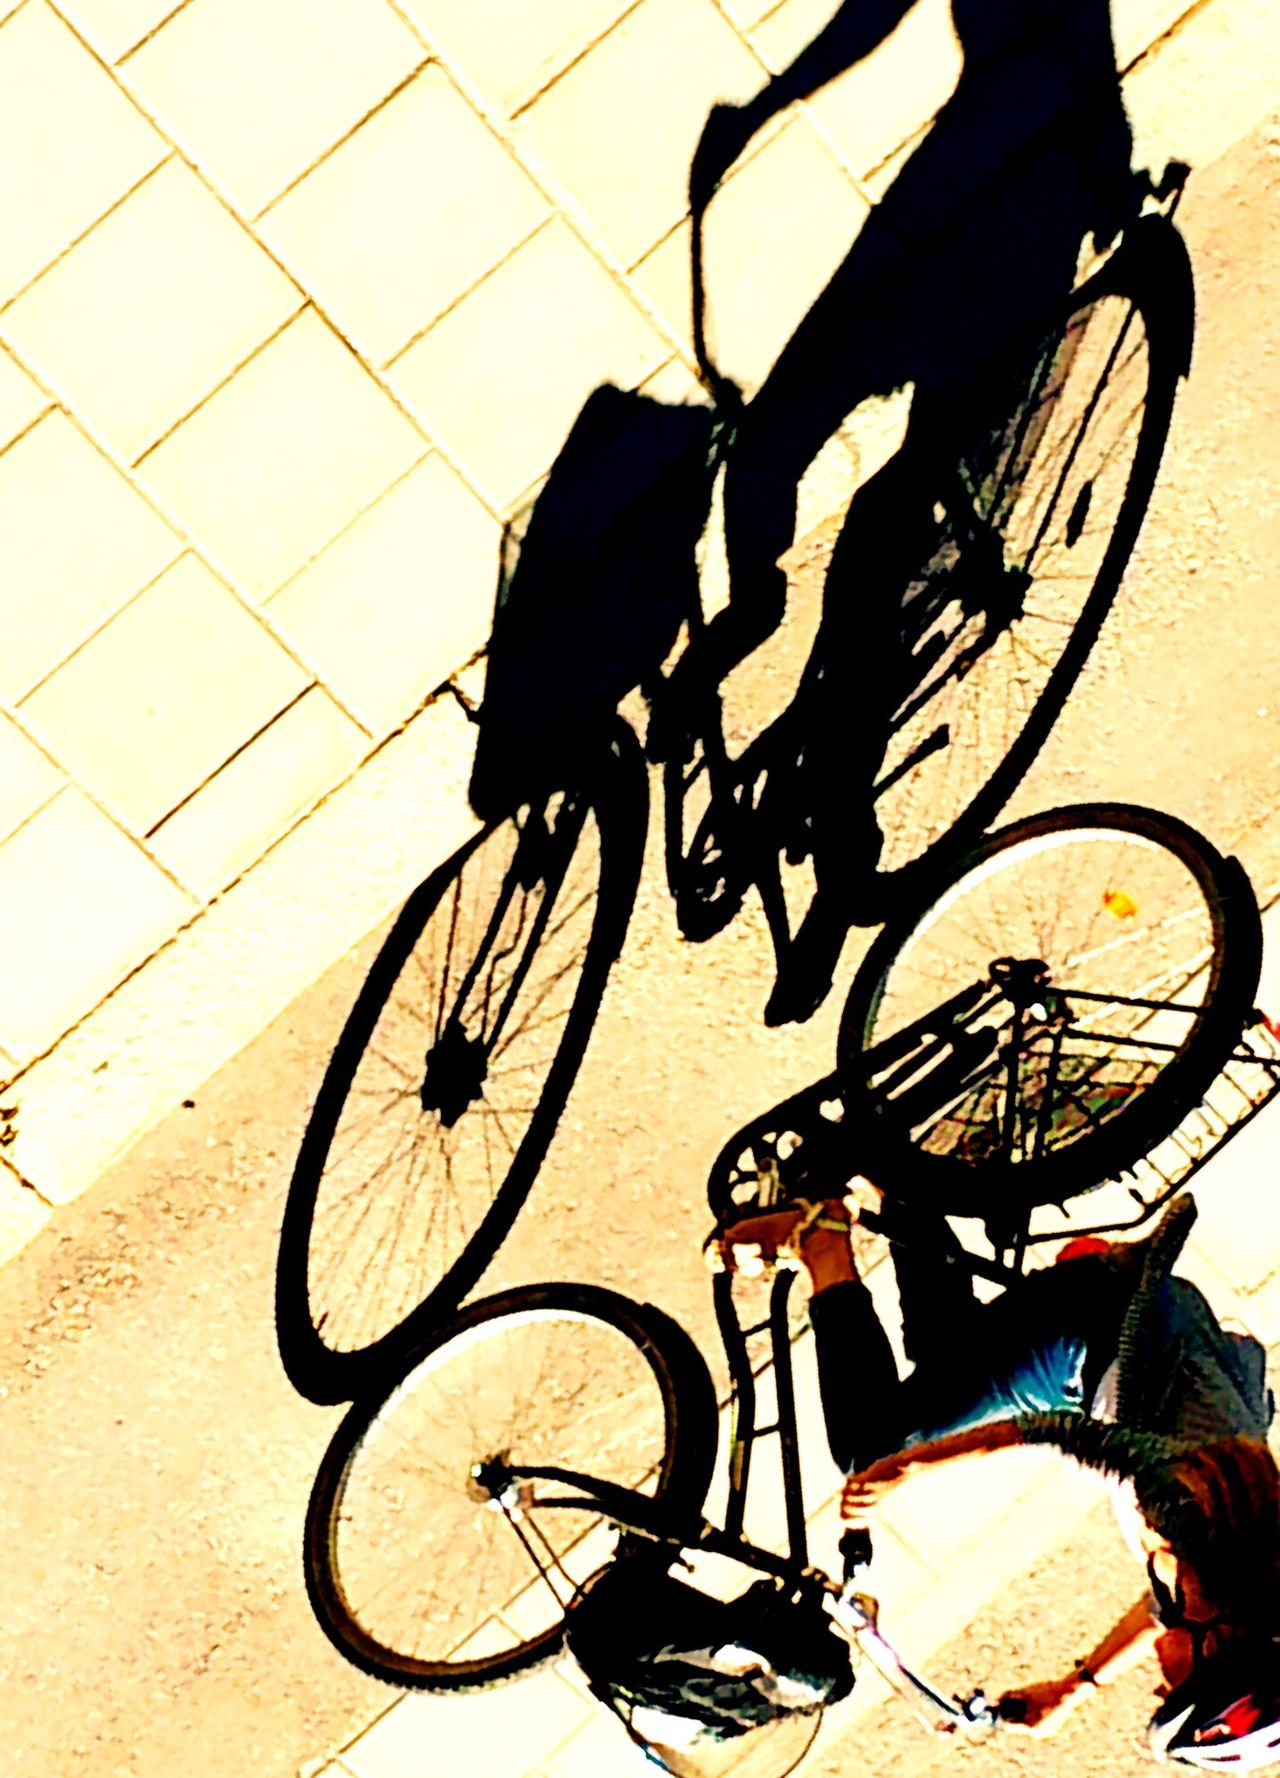 Shadows Bicycle Real People Lifestyles High Angle View Transportation Mode Of Transport Riding One Person Shadow Land Vehicle Low Section Men Human Leg Outdoors Sunlight Cycling Day